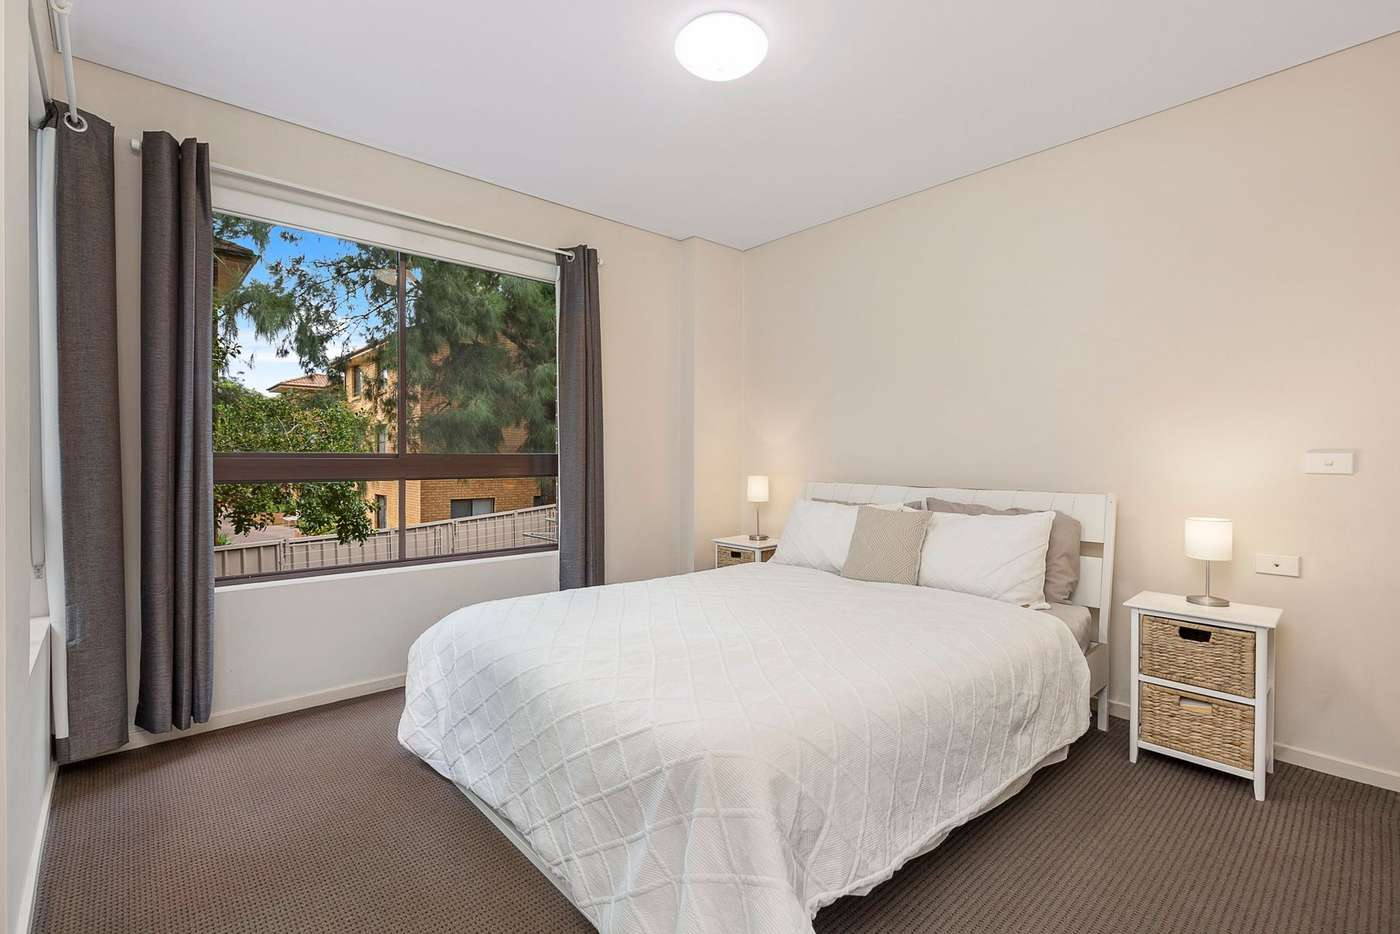 Fifth view of Homely unit listing, 25/6-8 Banksia Rd, Caringbah NSW 2229